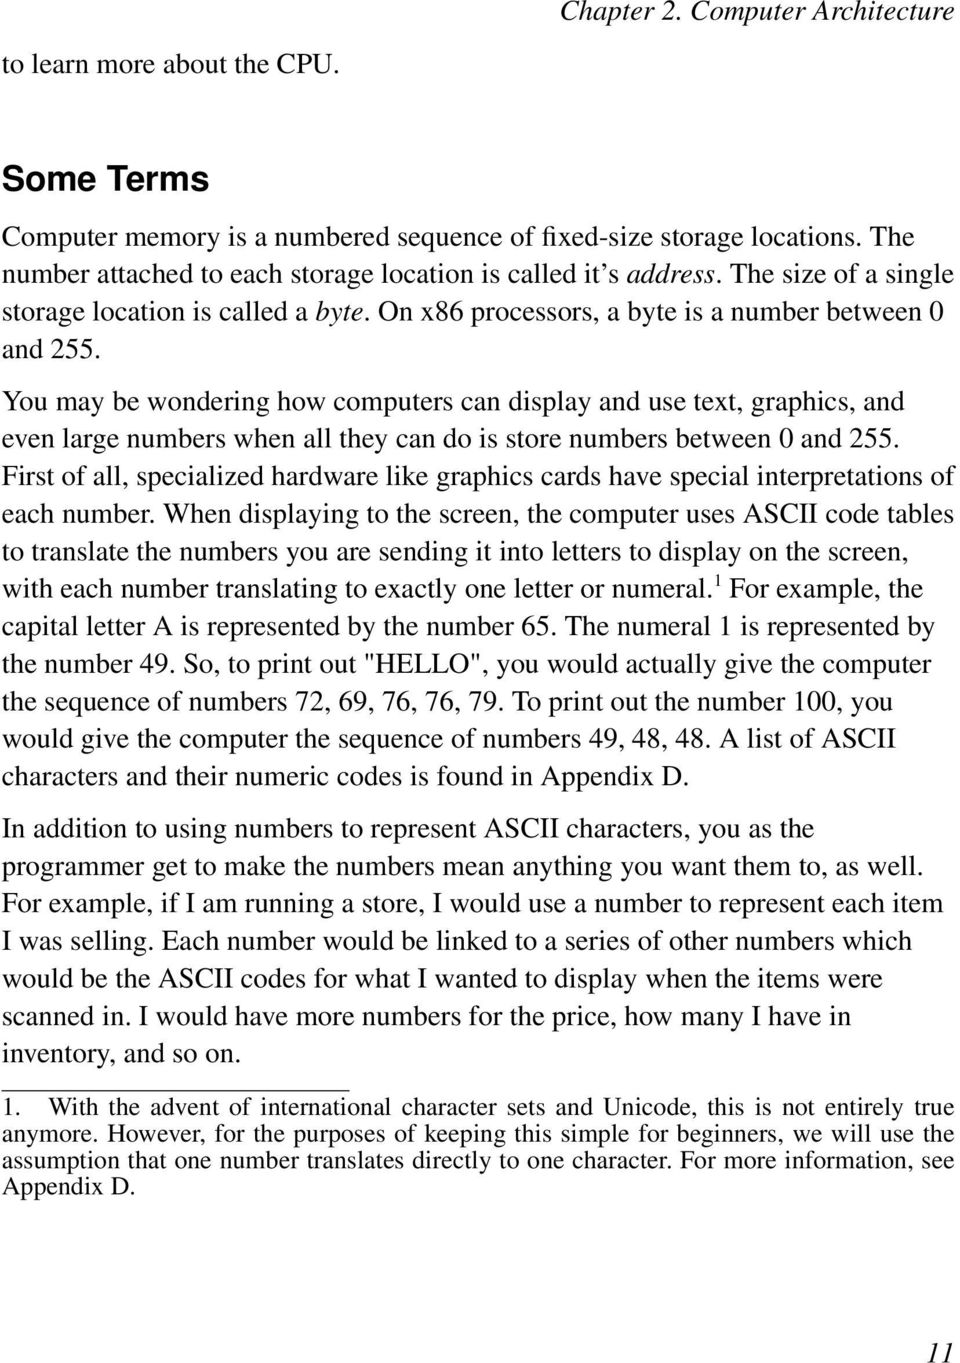 You may be wondering how computers can display and use text, graphics, and even large numbers when all they can do is store numbers between 0 and 255.